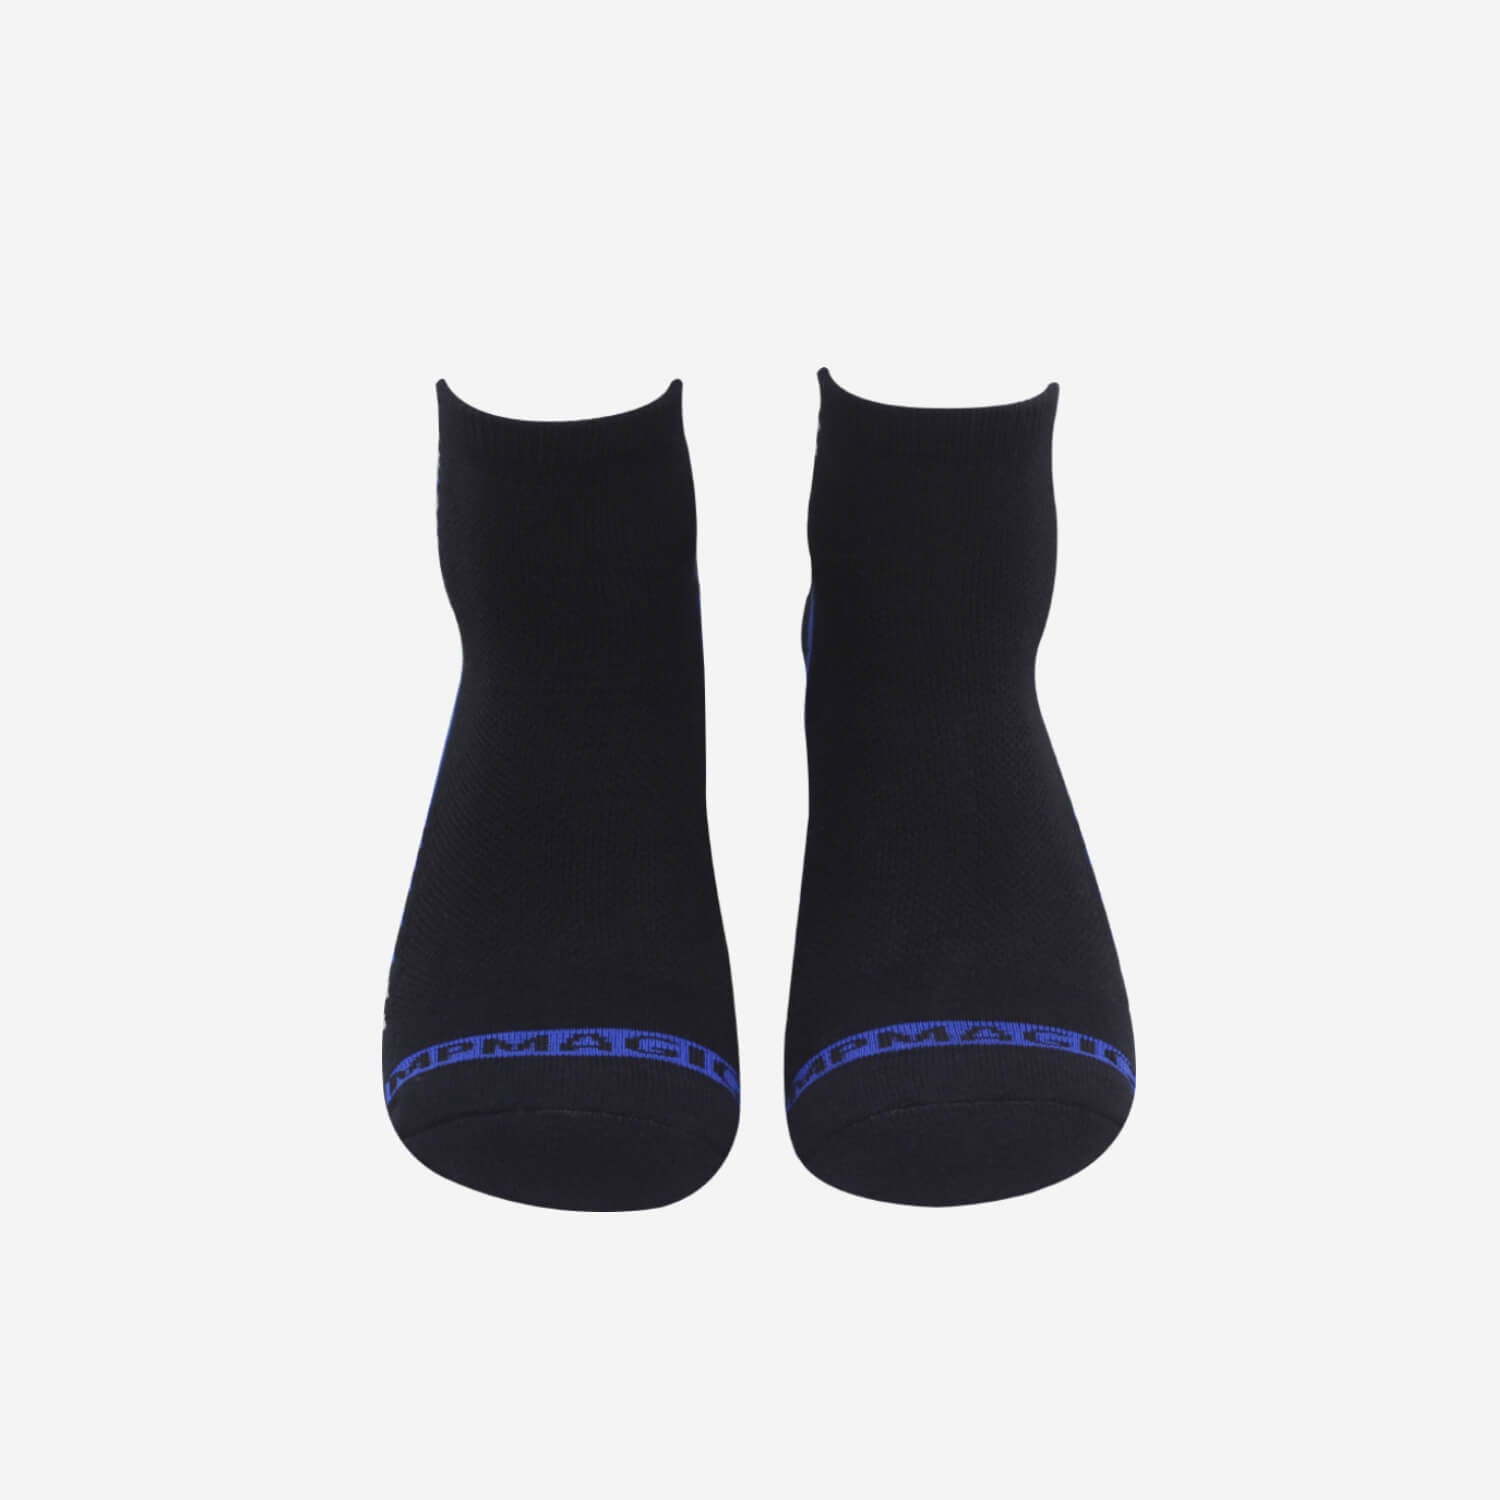 mpmagicsocks,antibacterial Socks,Blue Ankle antibacterial Sports Socks